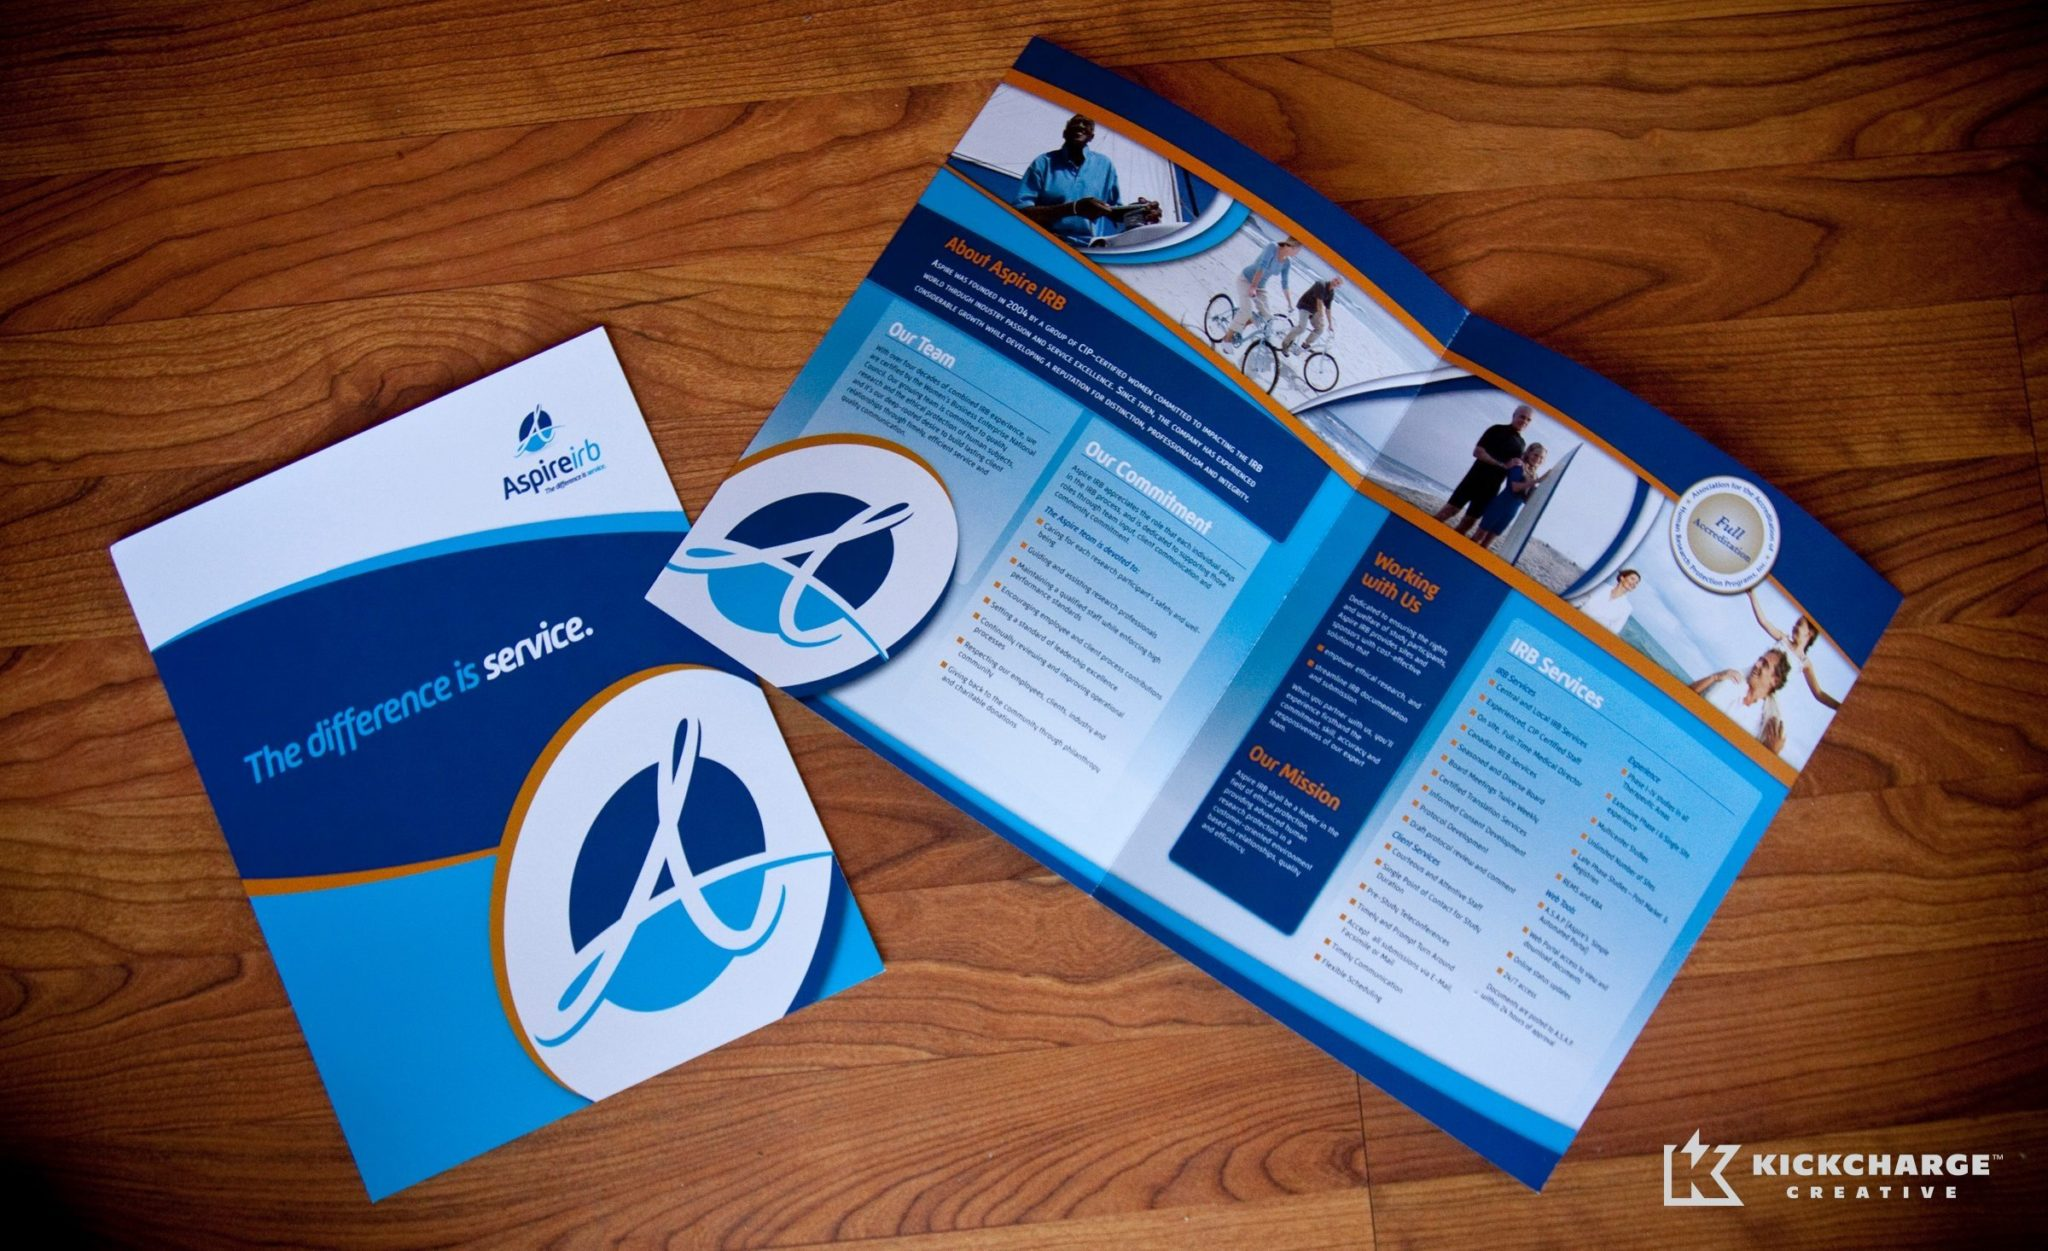 Print design for a company in La Mesa, California that promotes research in healthcare.